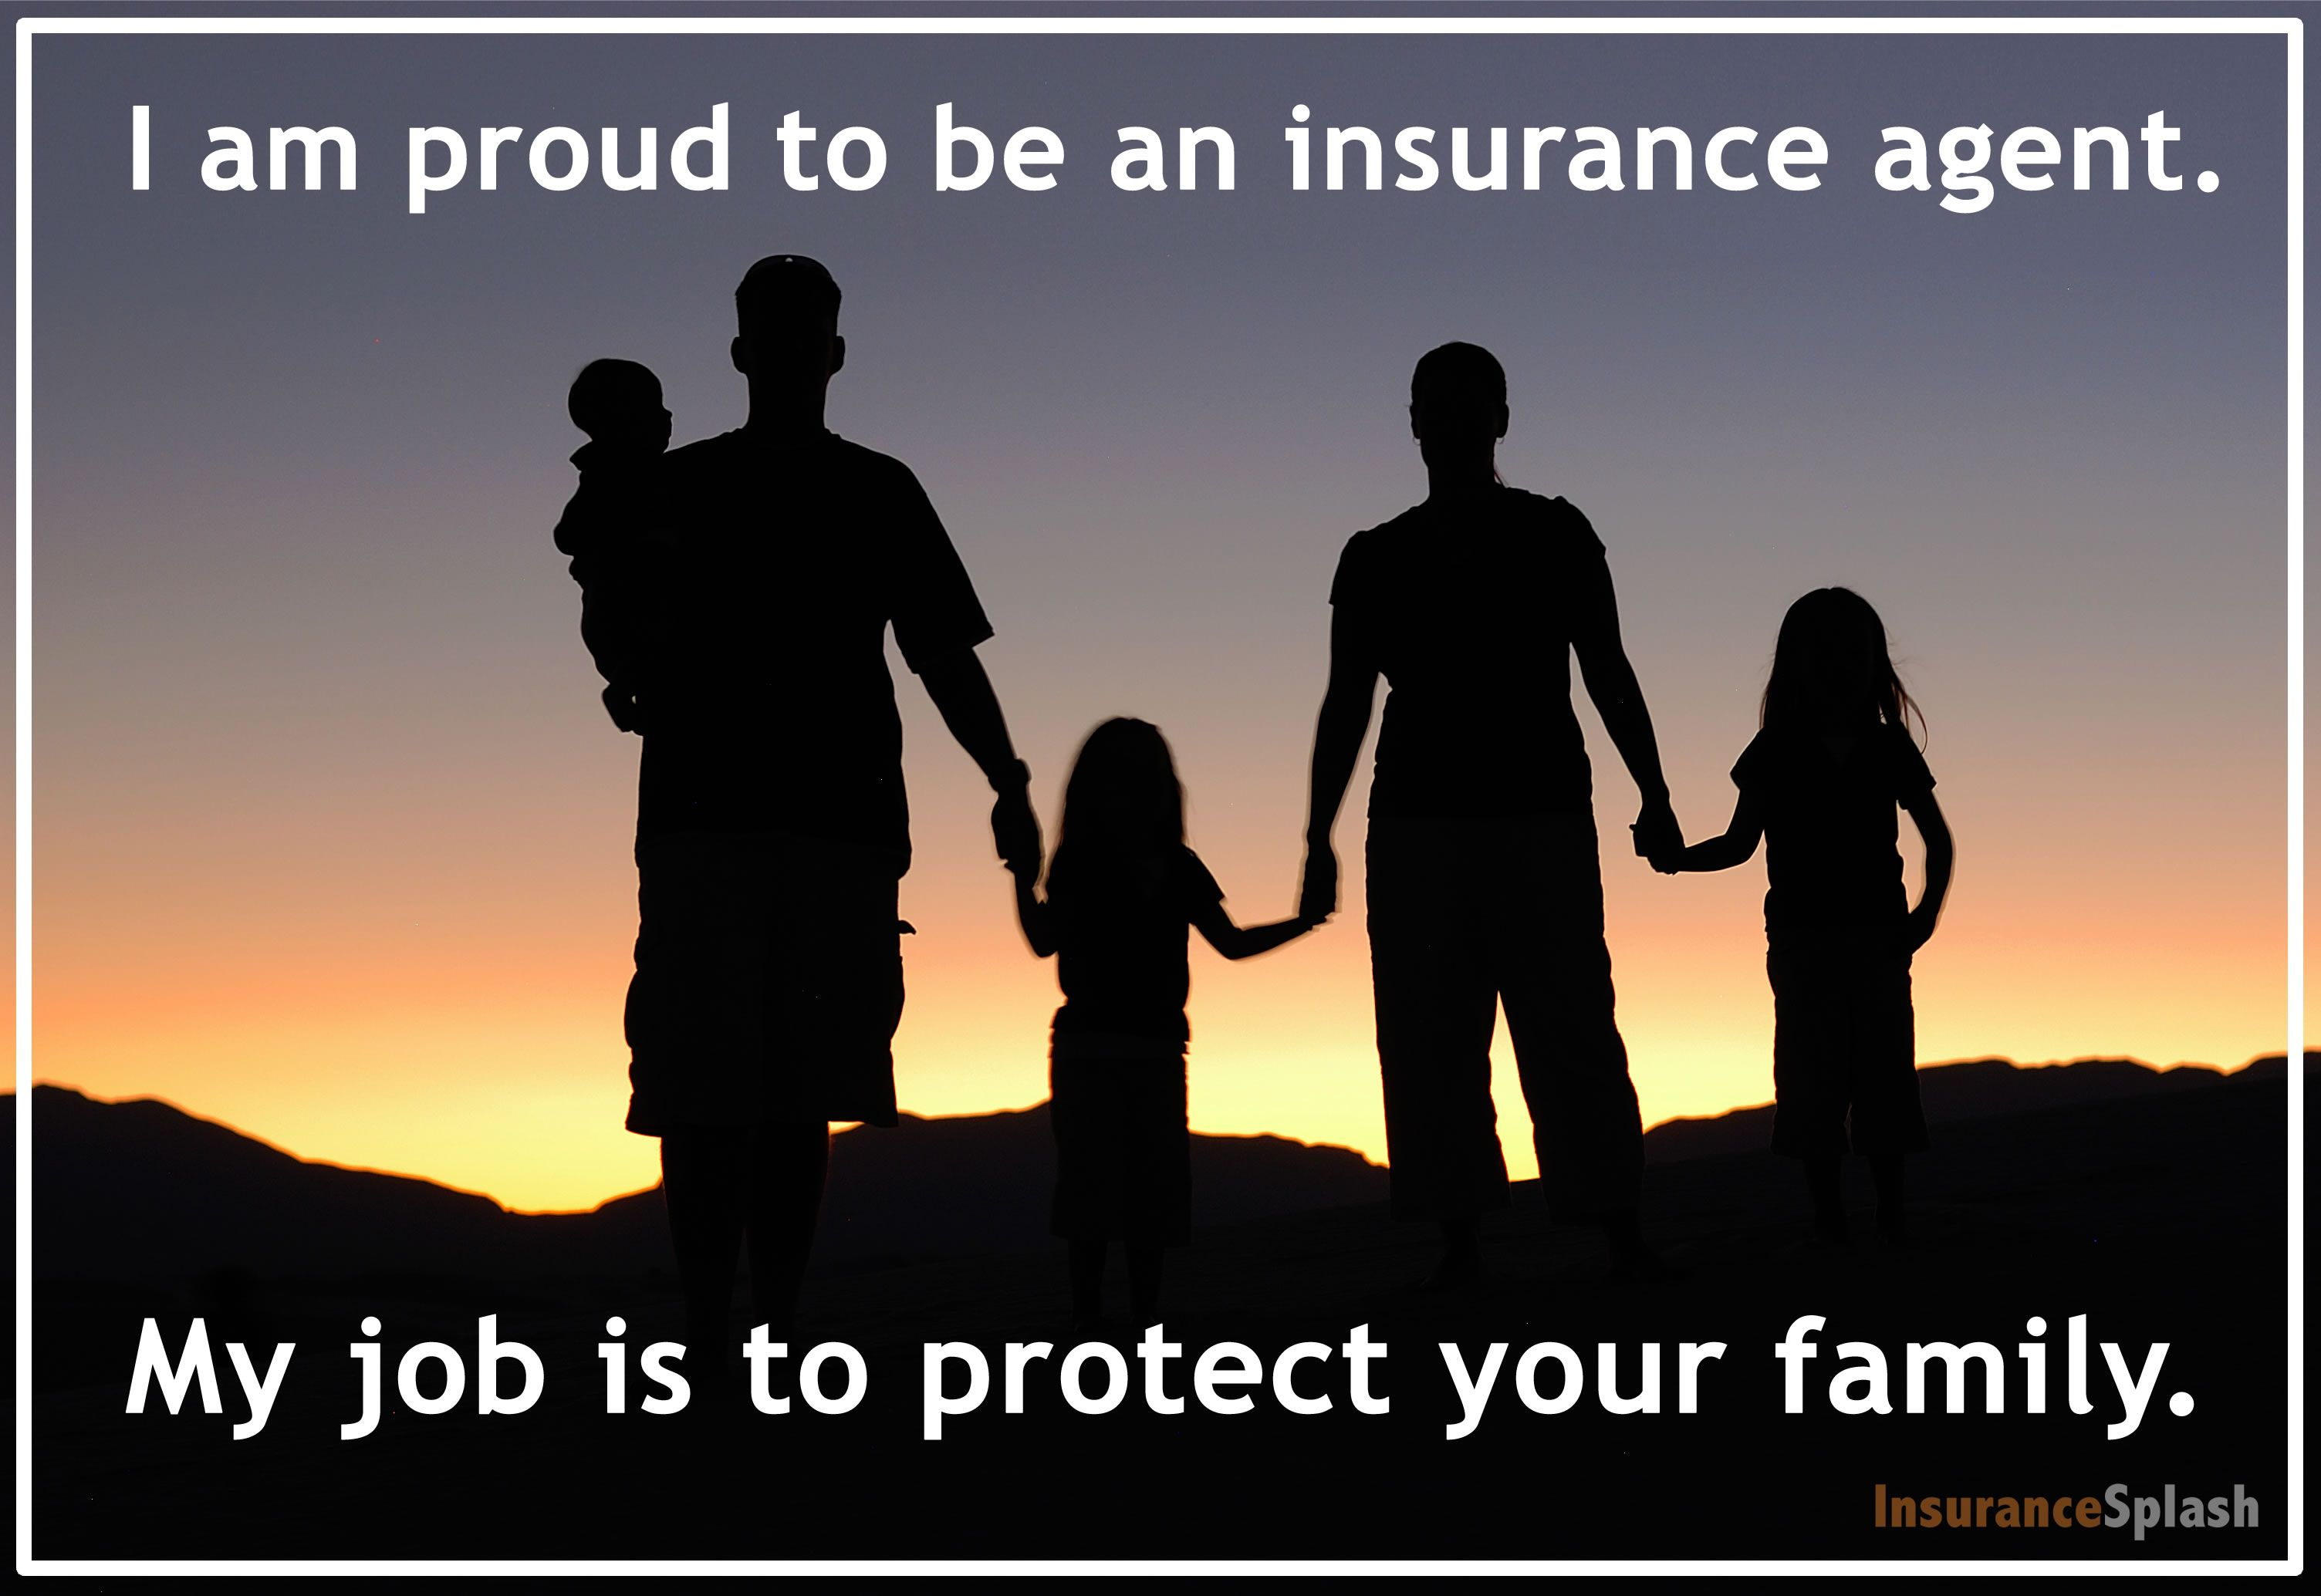 Insurance Quotes An Insurance Agent's Job Is To Protect Your Familythat's Something .